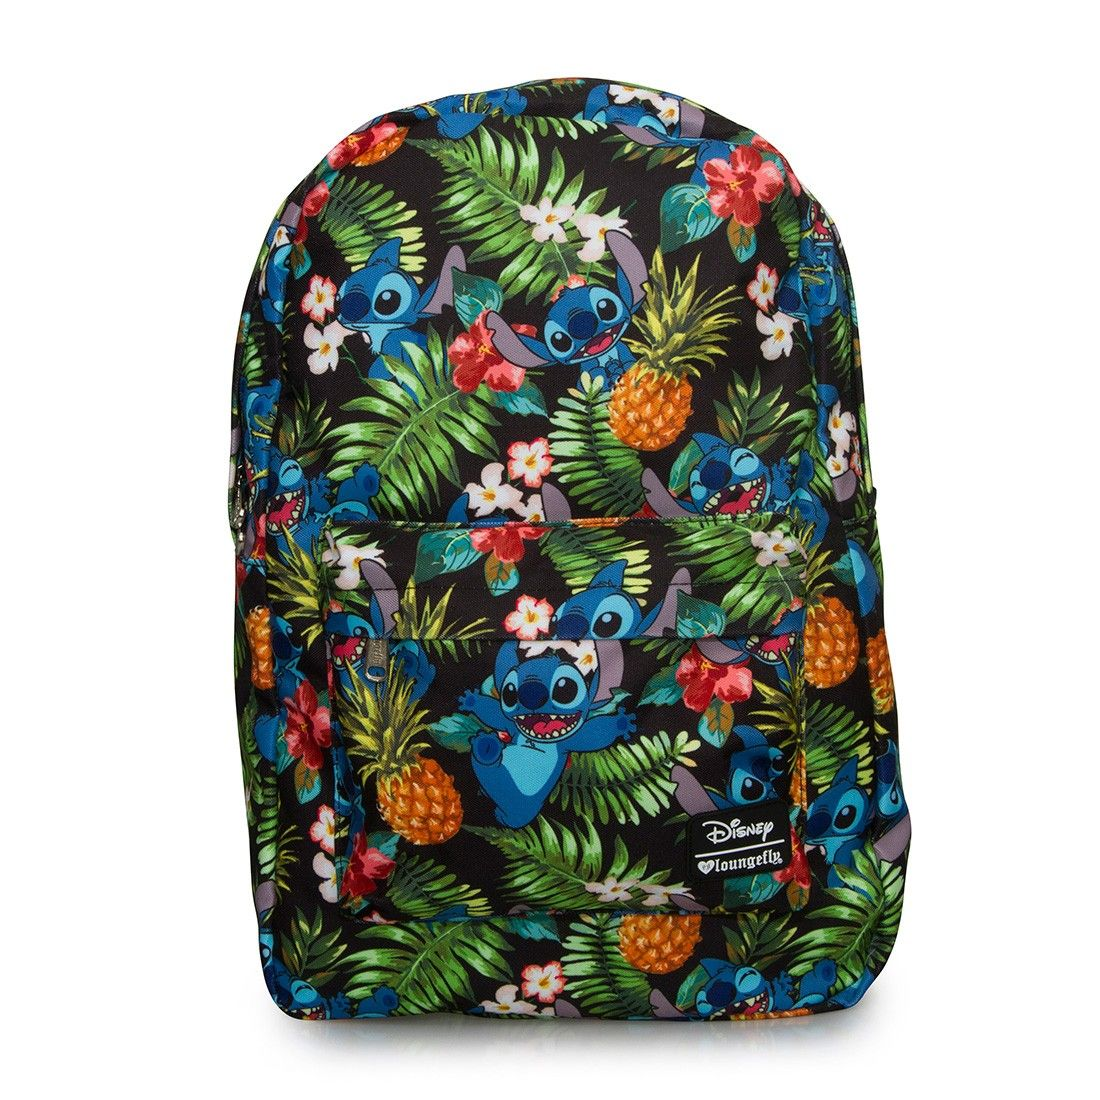 b423faa05b5 Loungefly x Disney Stitch Hawaiian Backpack - Bags - Disney - Brands ...